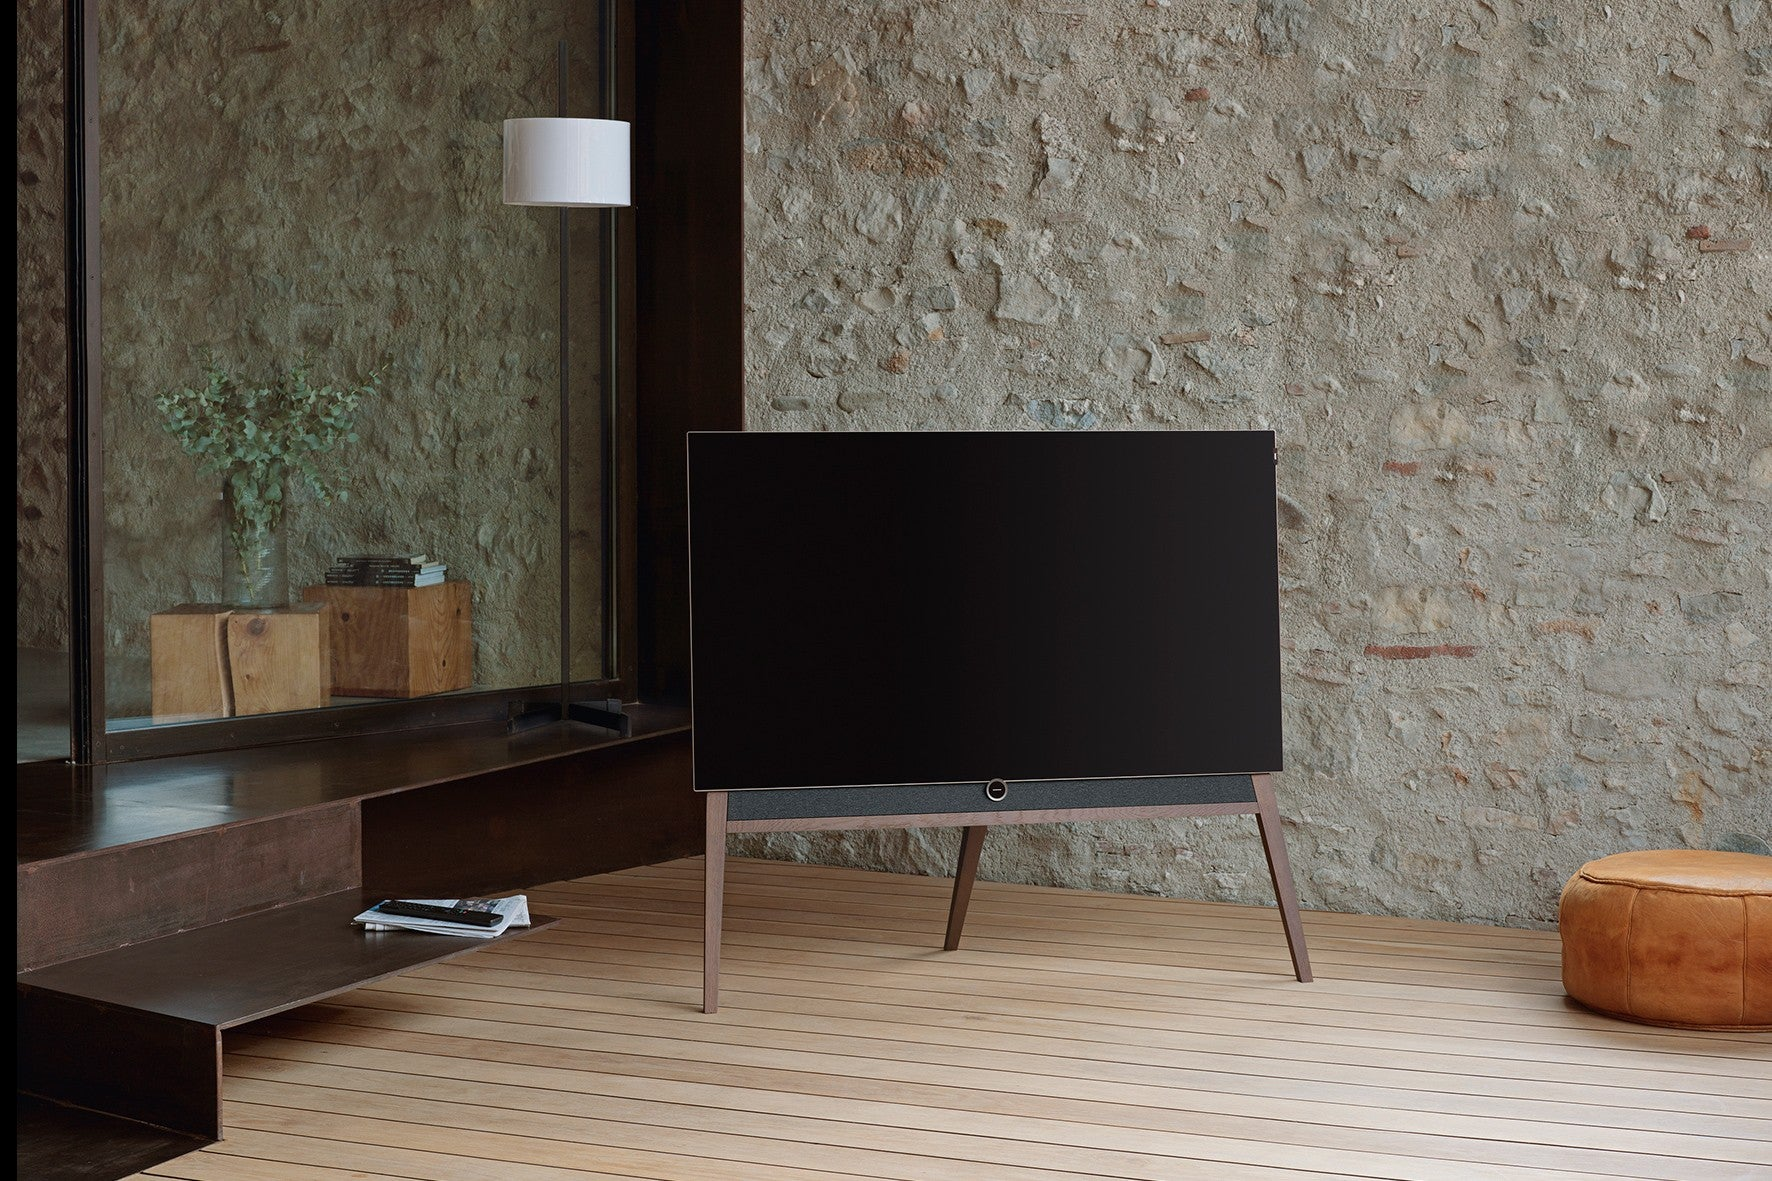 Loewe bild 5 OLED Television Floorstanding Product Design and Art Direction Bodo Sperlein